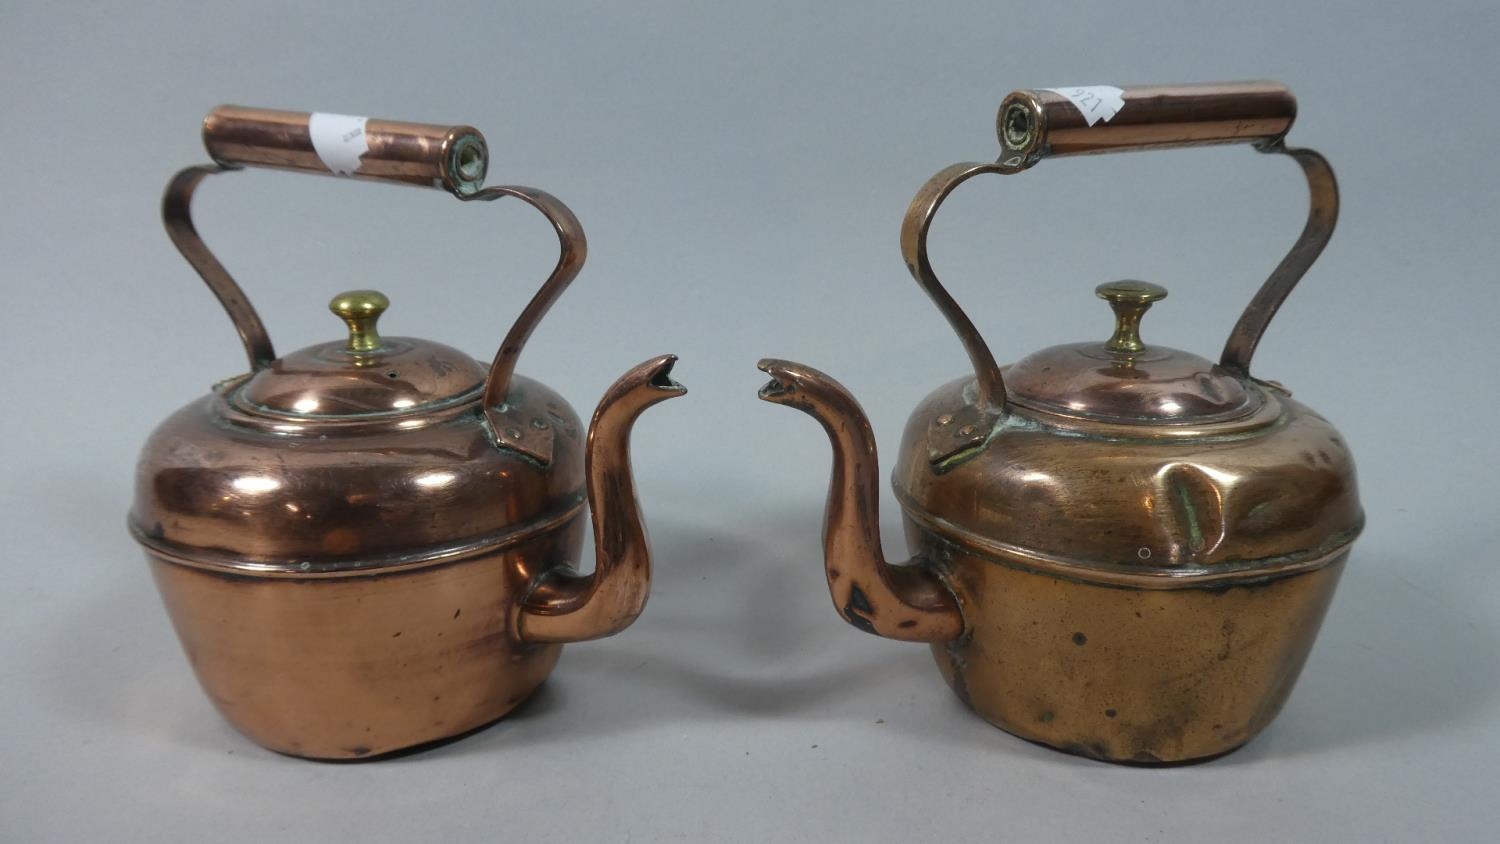 Lot 48 - A Near Pair of 19th Century Small Copper Kettles, The Tallest 15cm High